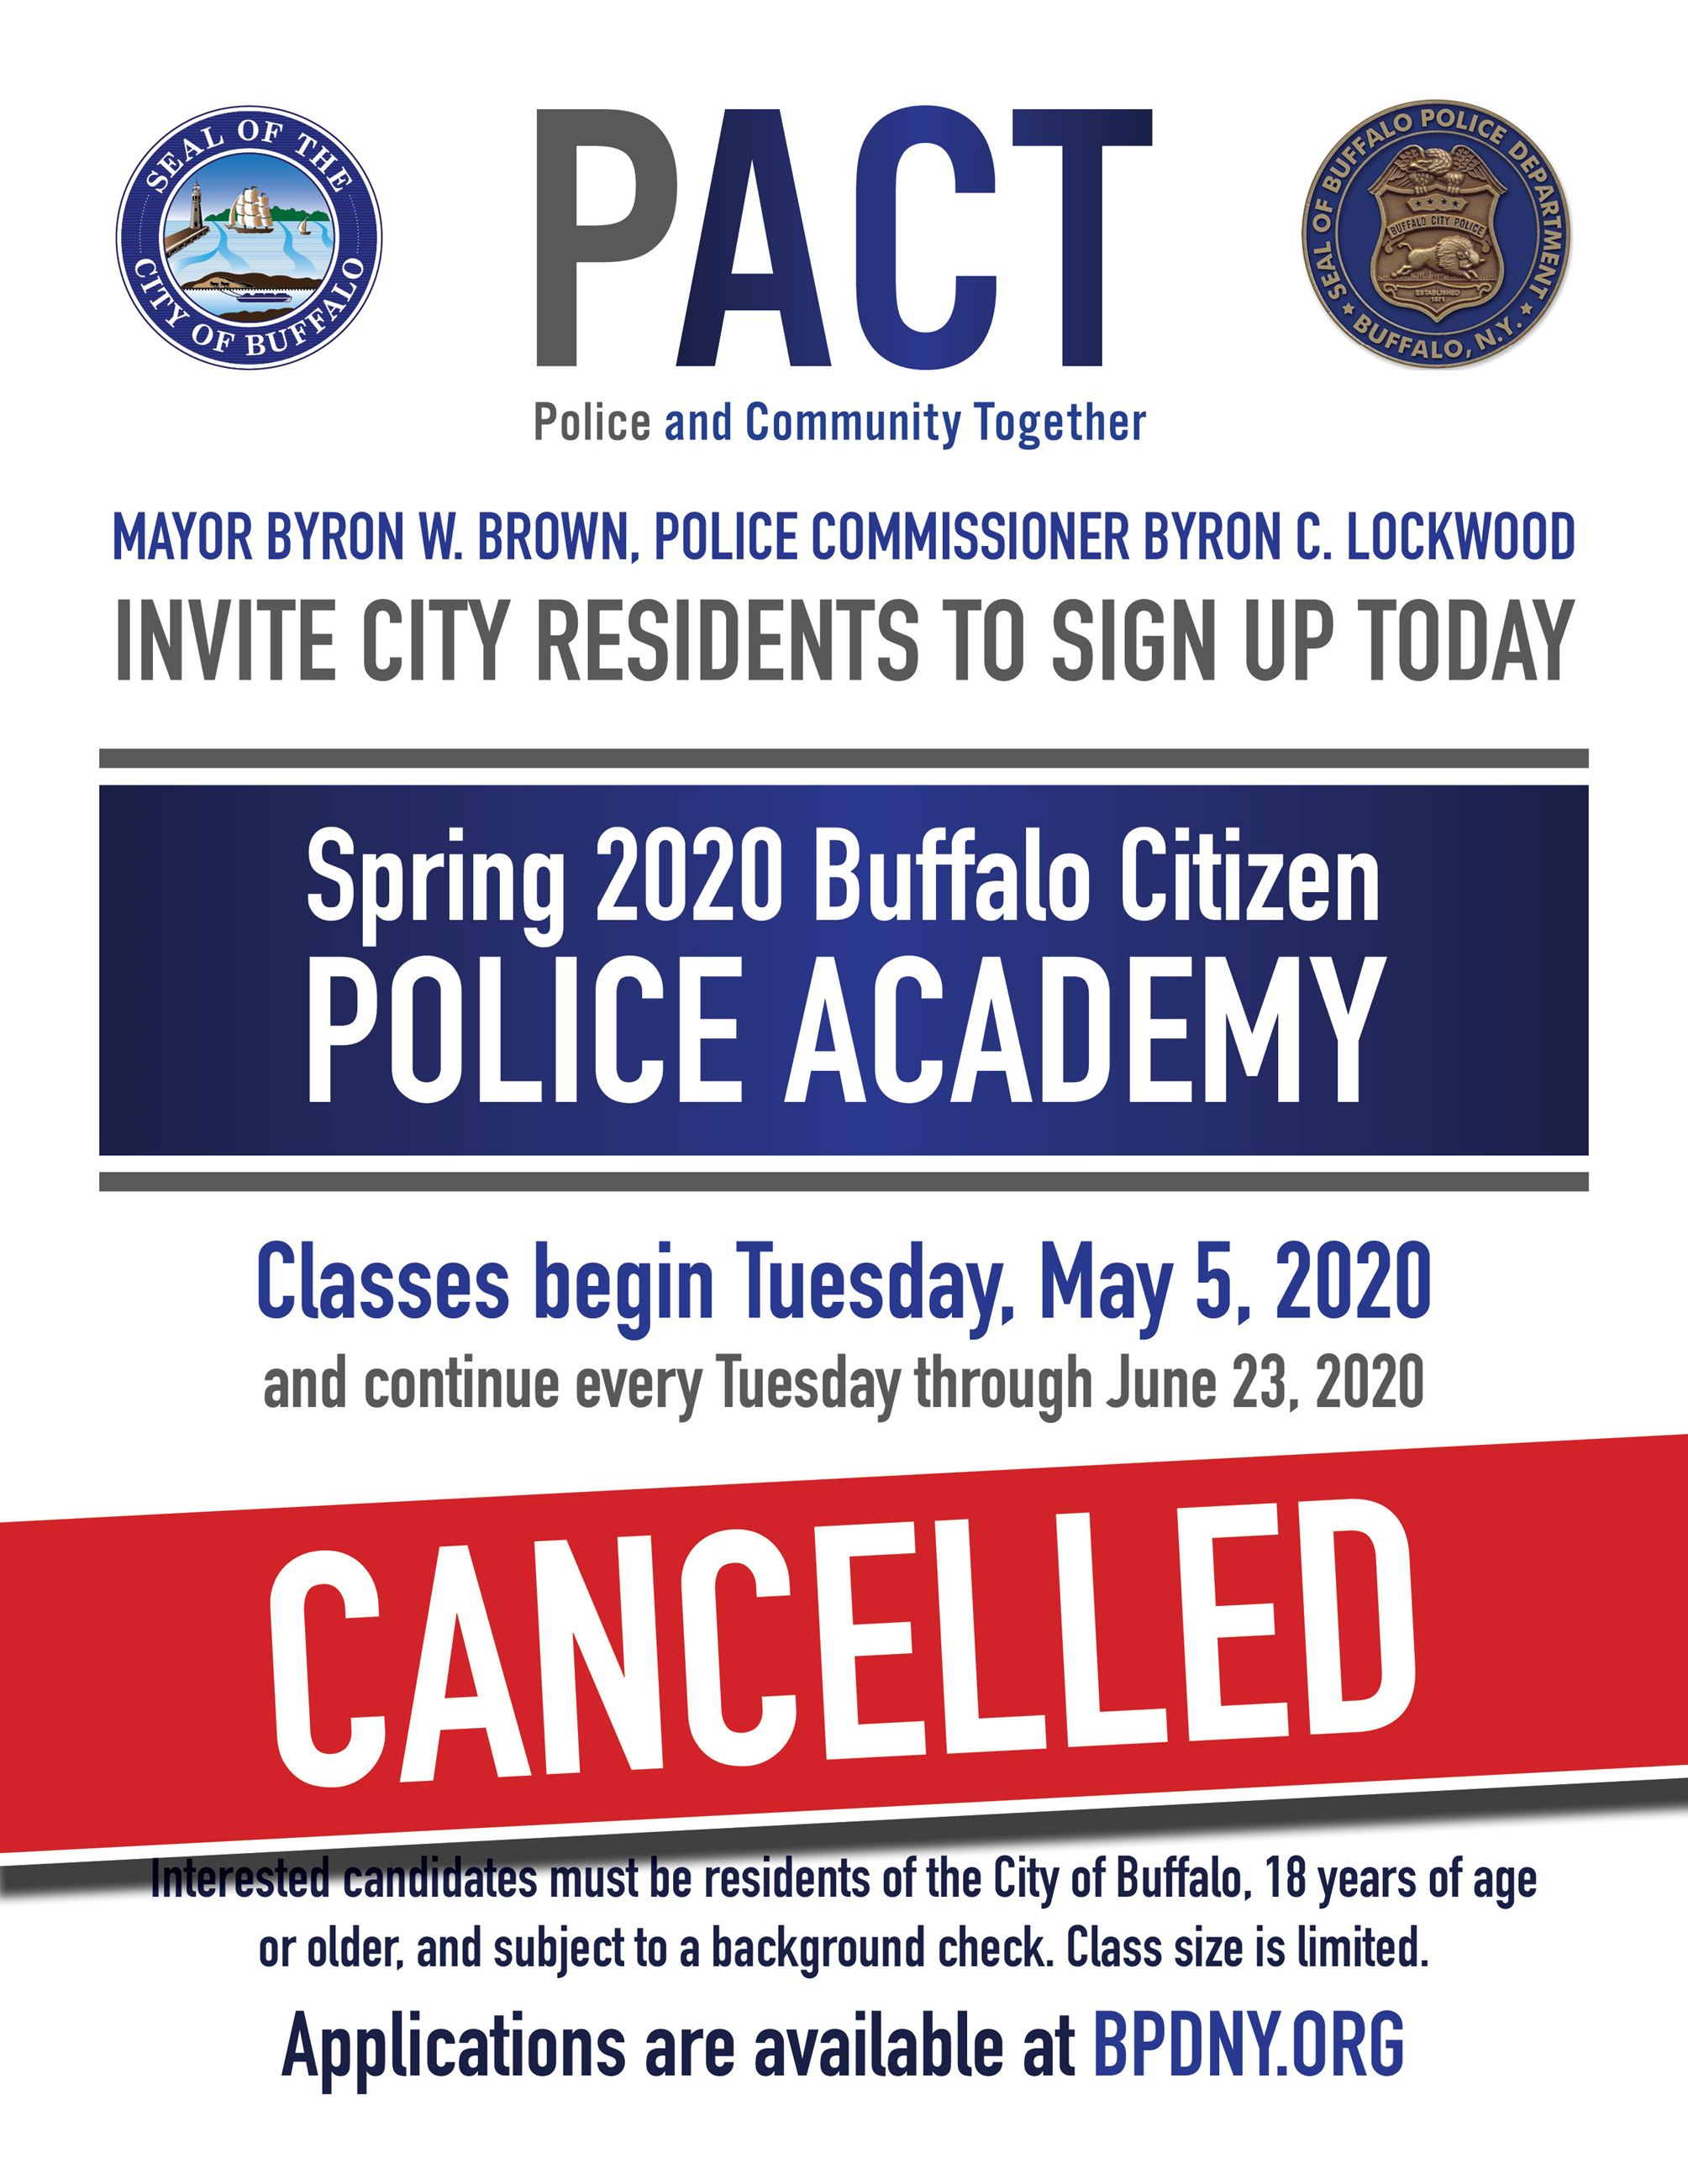 PACT-Flyer-Spring2020-Cancelled (002)